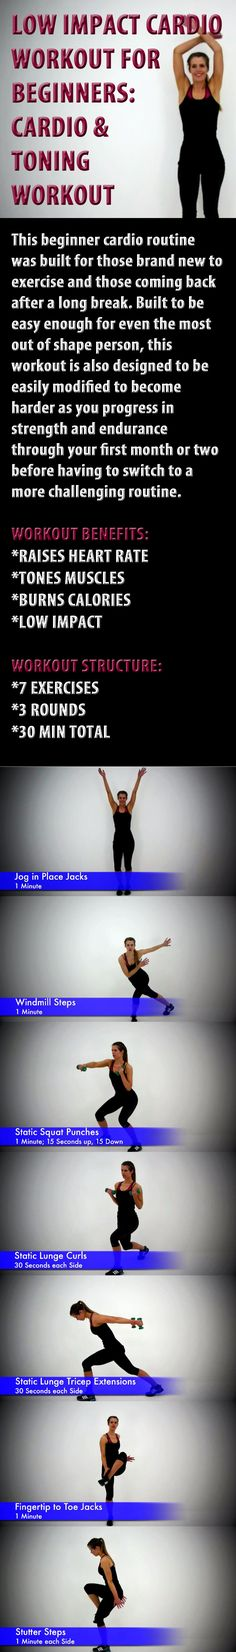 .Low Impact Cardio Workout for Beginners - Beginner Cardio & Toning Workout Routine. #lowimpactcardio #toningworkout #beginnercardio #beginnerworkout #fitness #exercise